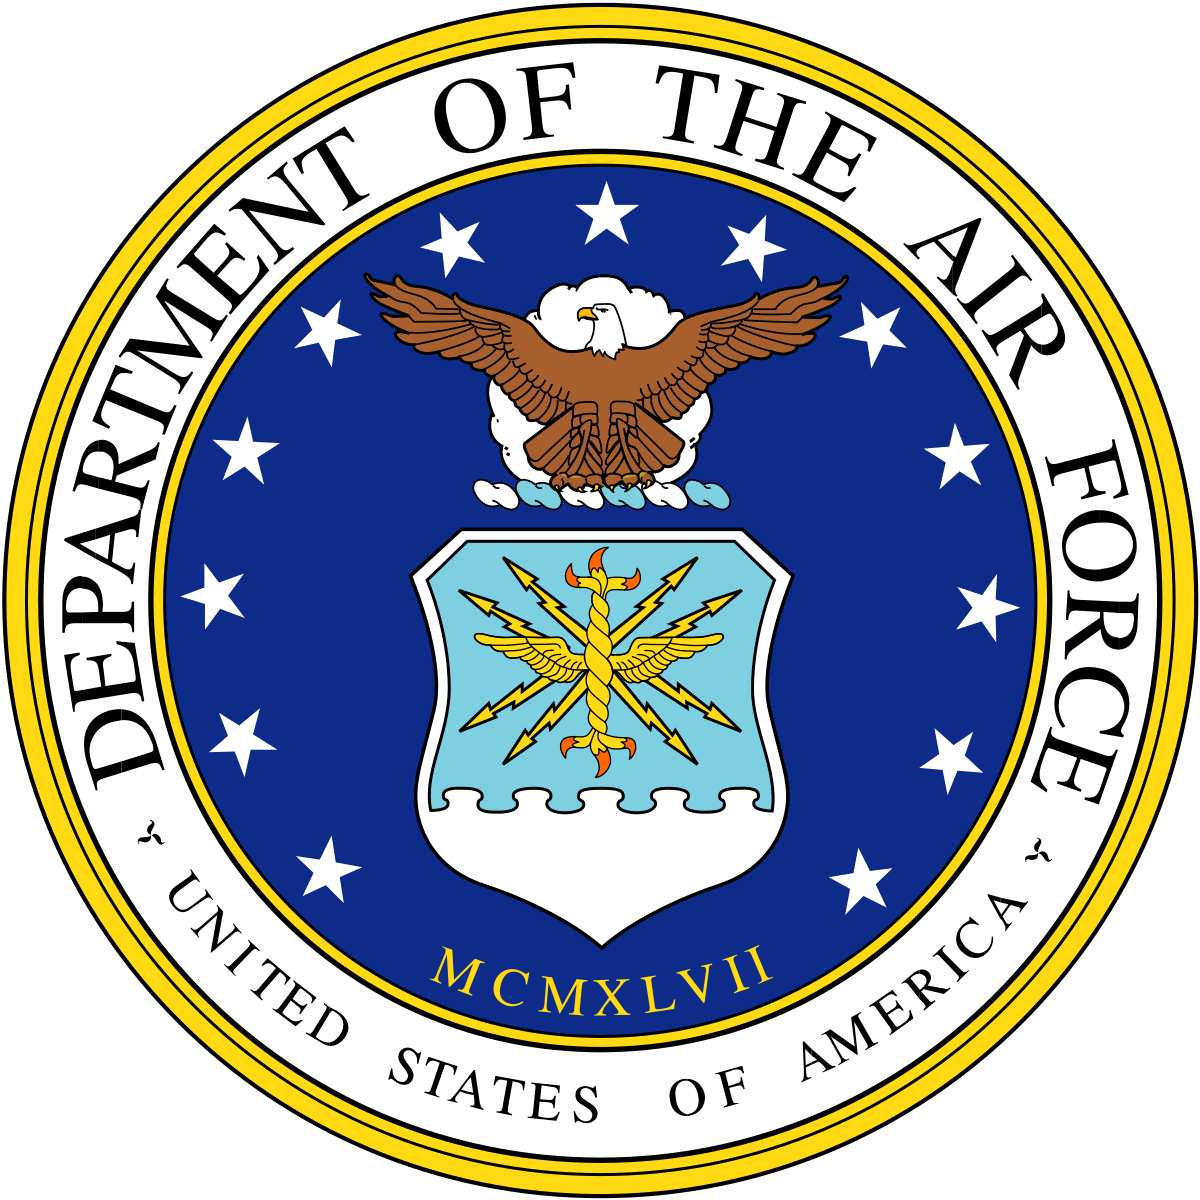 Department of the air force png. United states wikipedia